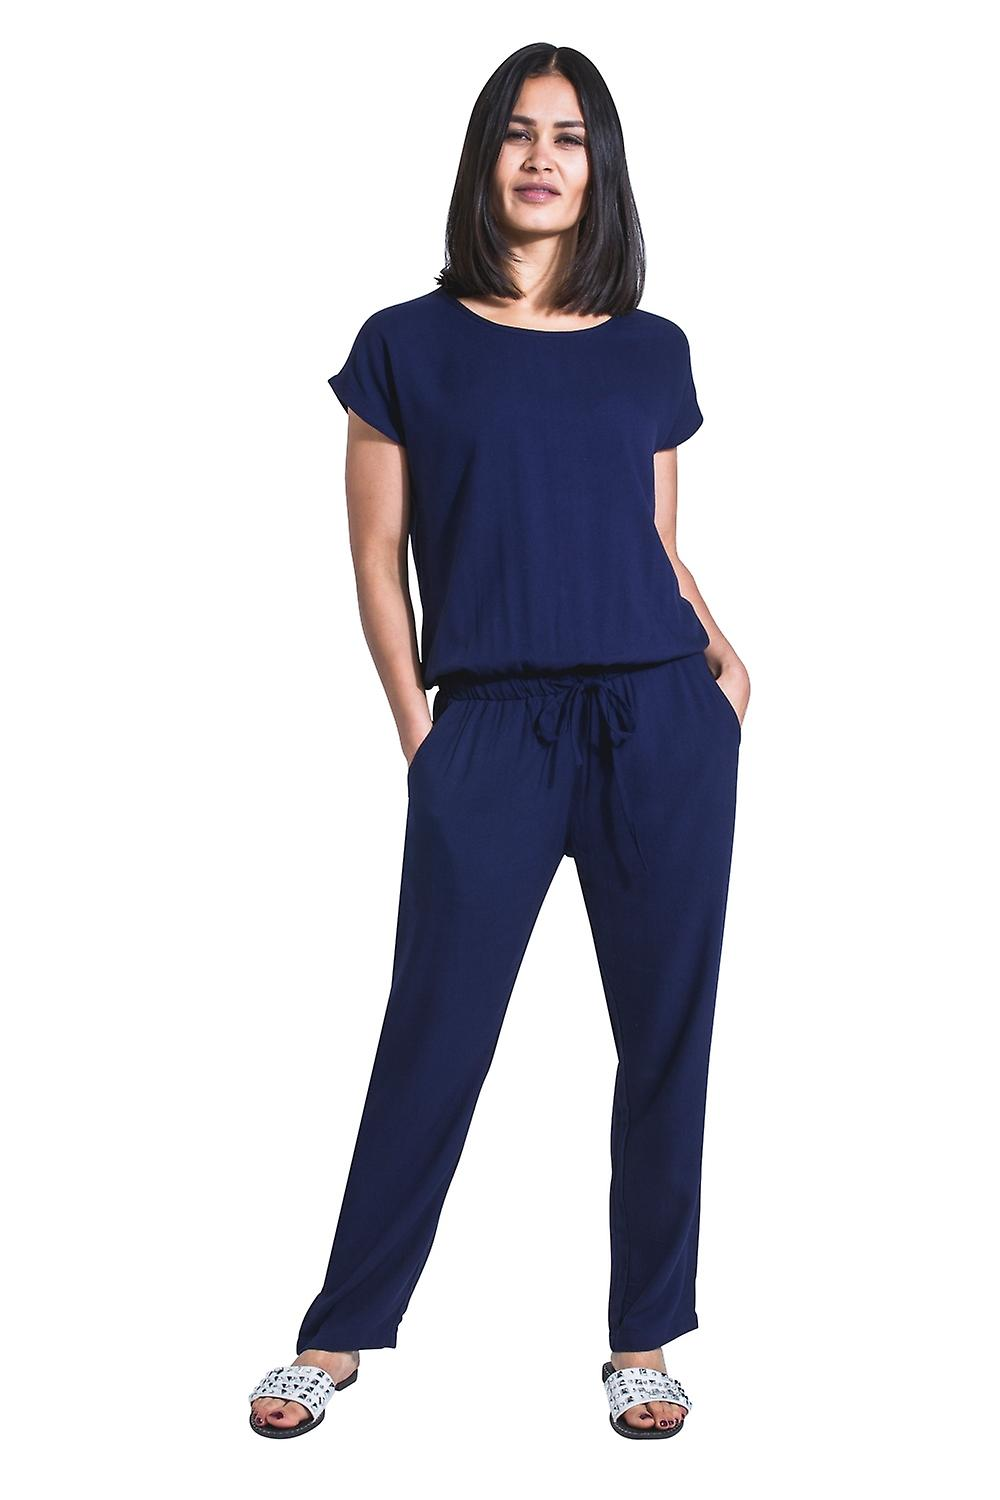 6ba3a8ae0c2 Ladies Jumpsuit with short sleeve - Blue All-in-one Playsuit